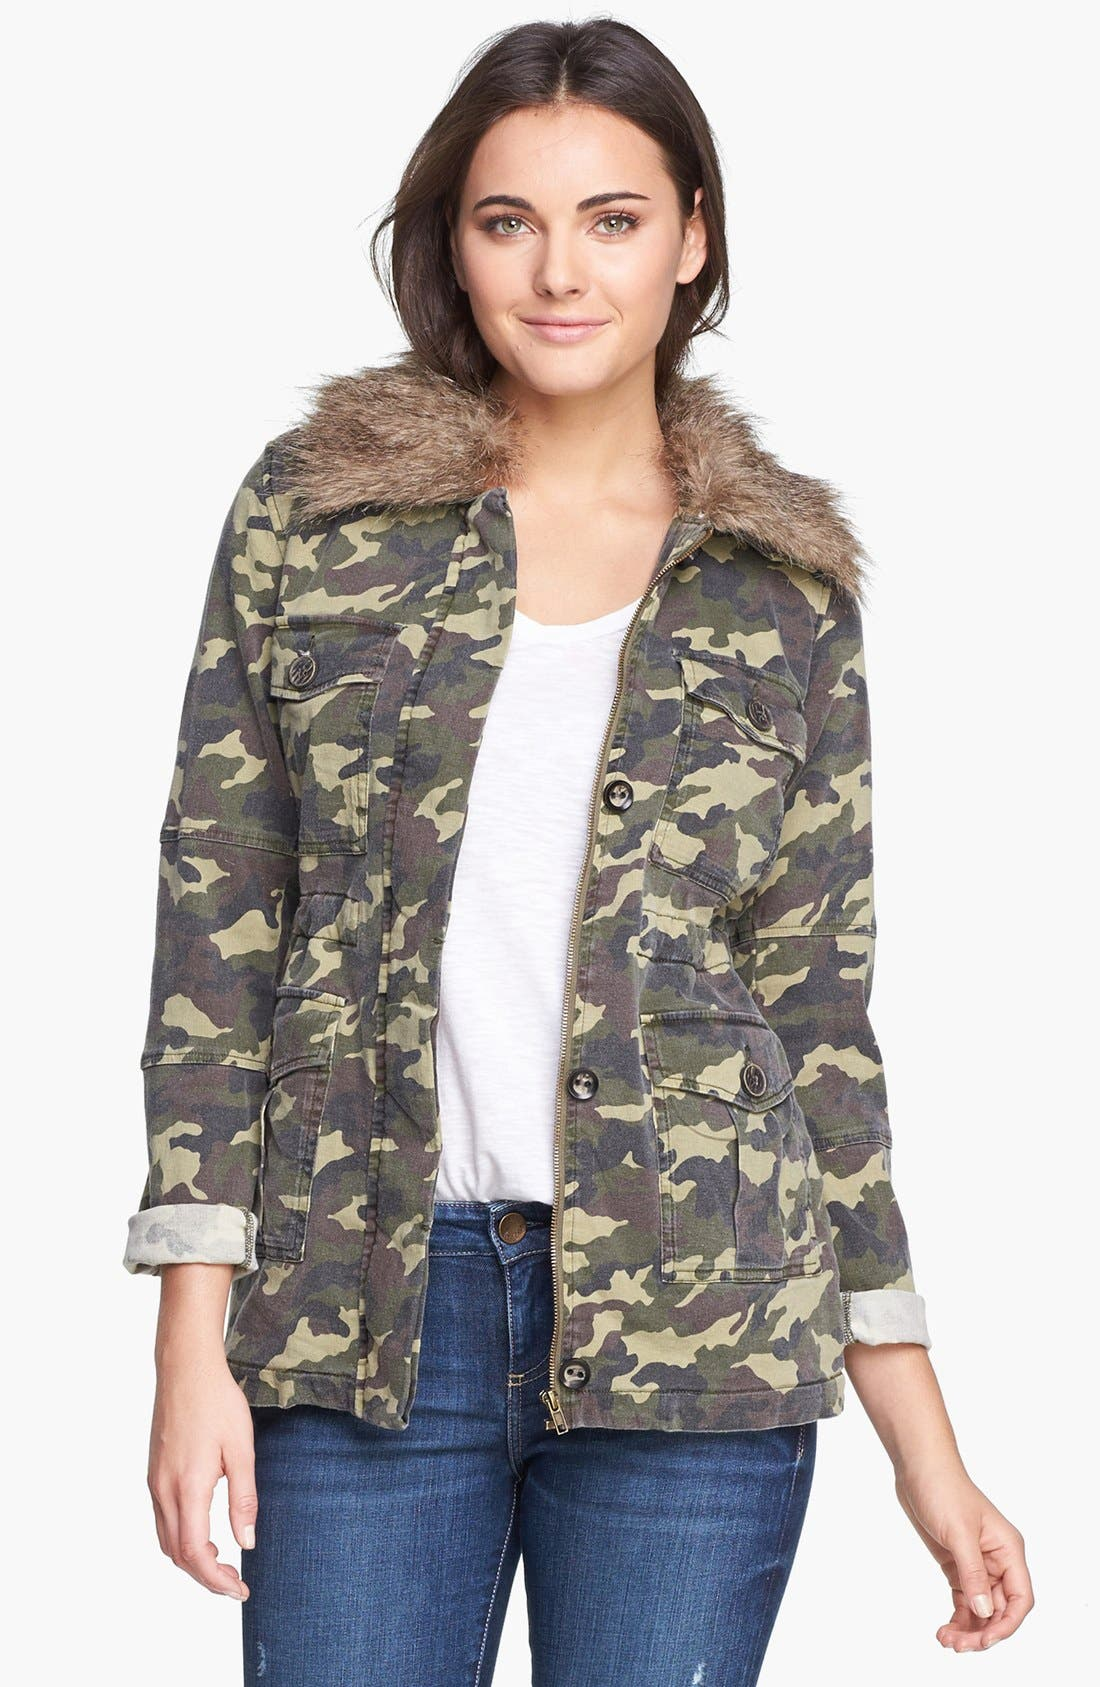 Alternate Image 1 Selected - KUT from the Kloth 'Nolan' Camo Print Jacket